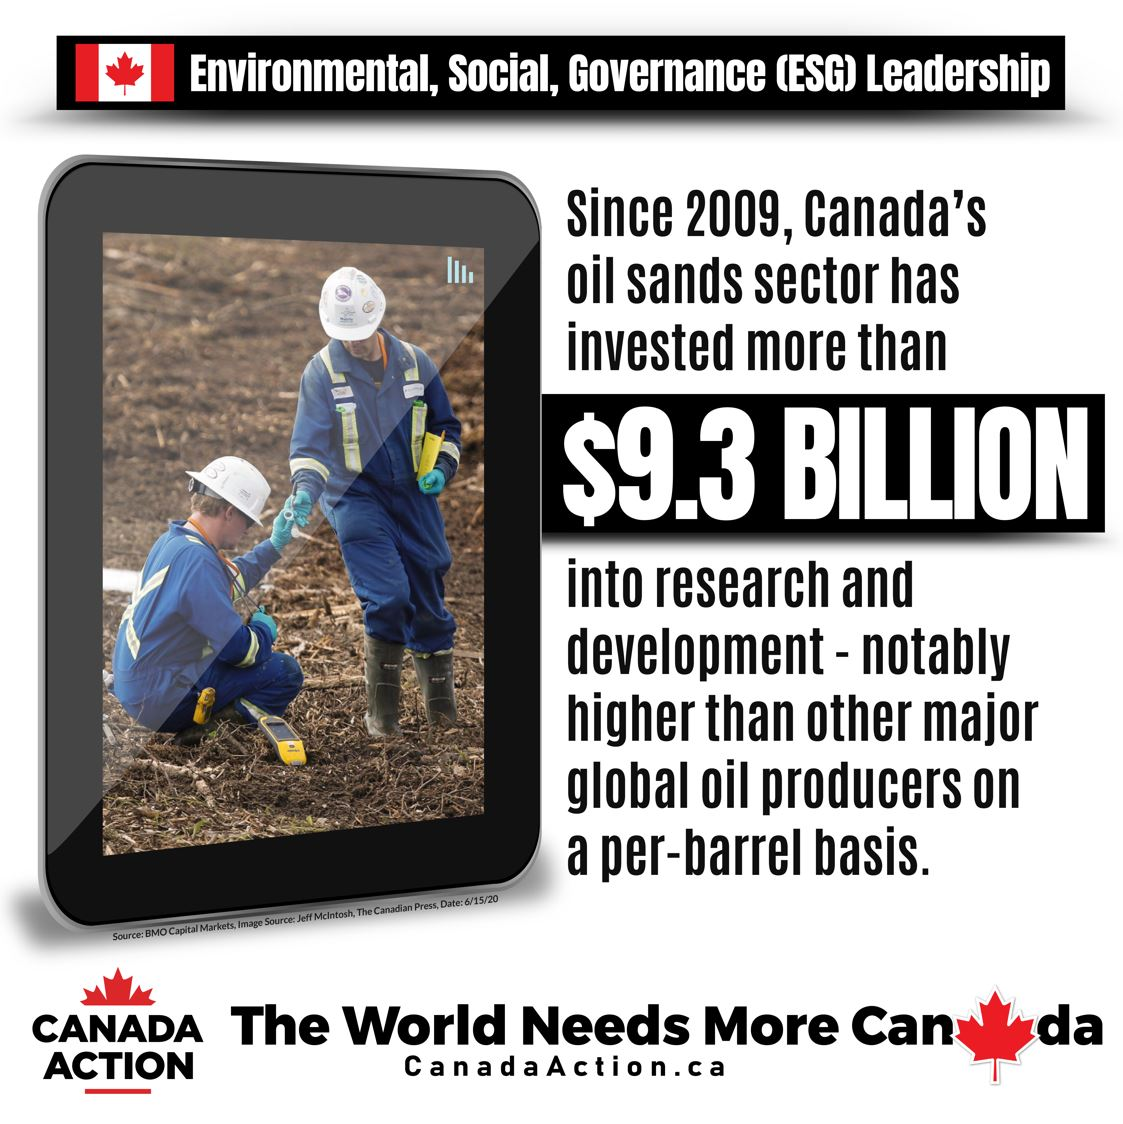 Canada's ESG leadership - oil and gas sector spent $9.3 billion on research and development since 2009